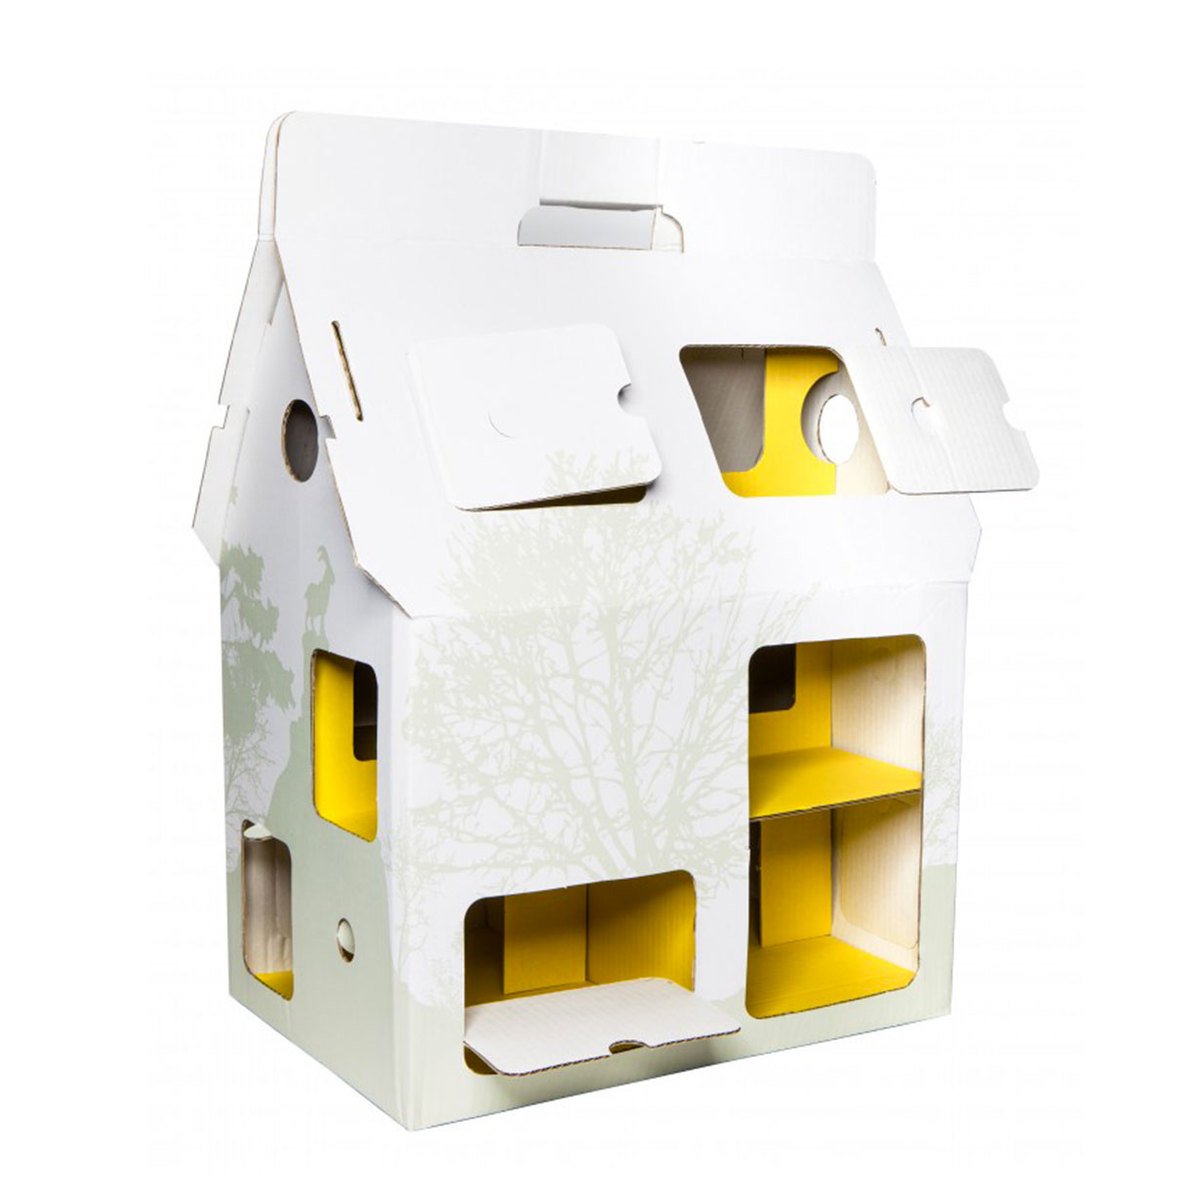 LOVEThESIGN | Mobile Home Recycle! Yellow